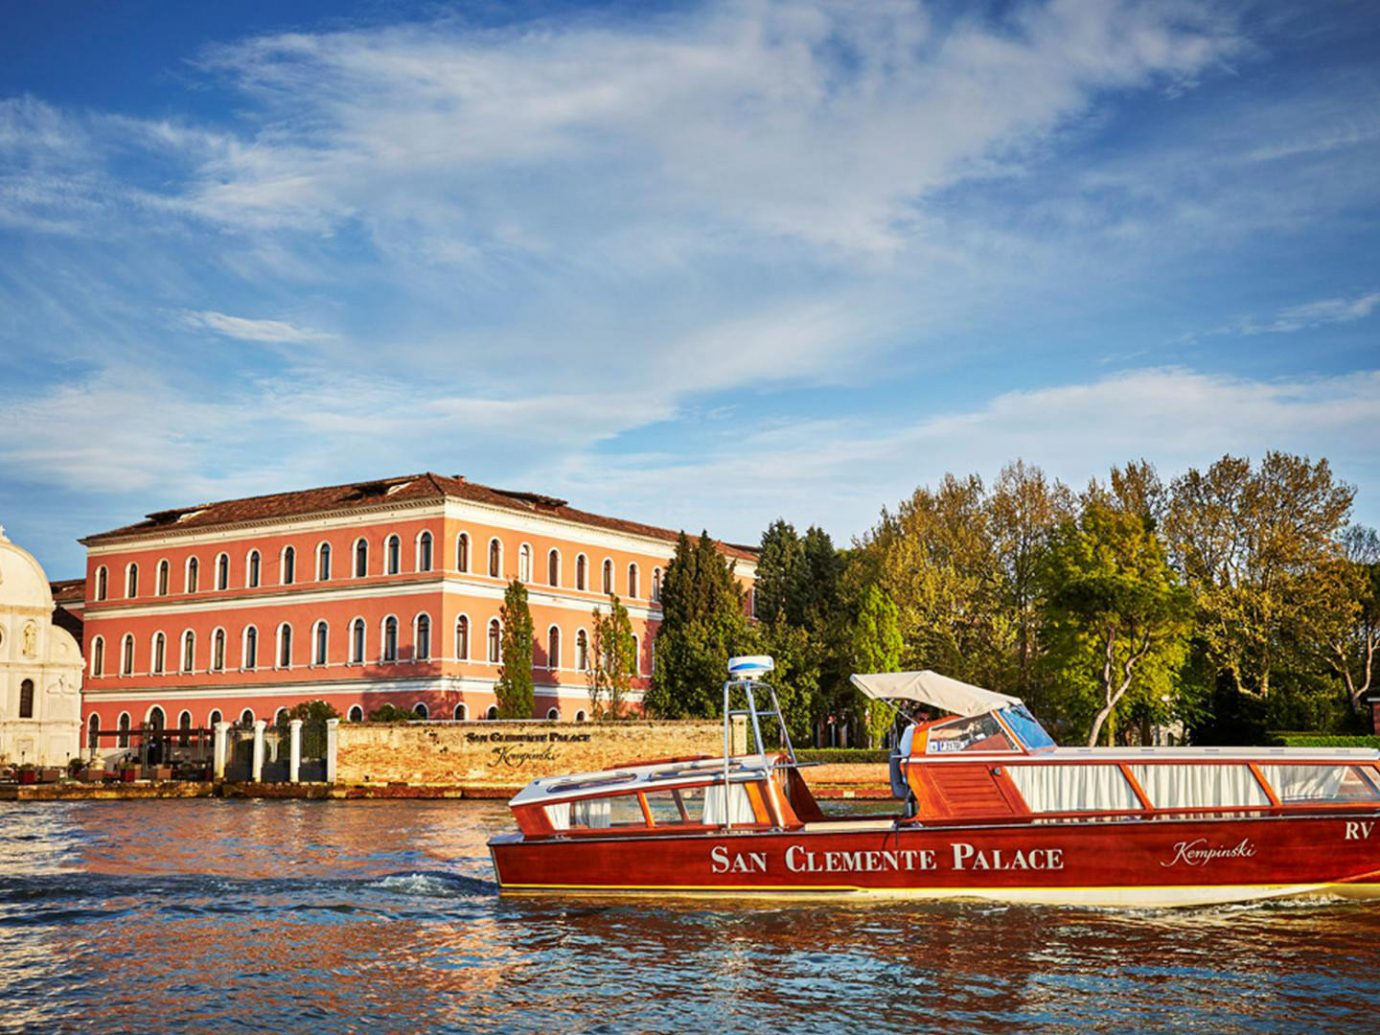 Hotels Italy Luxury Travel Venice sky water Boat vehicle River waterway Canal Sea evening boating traveling